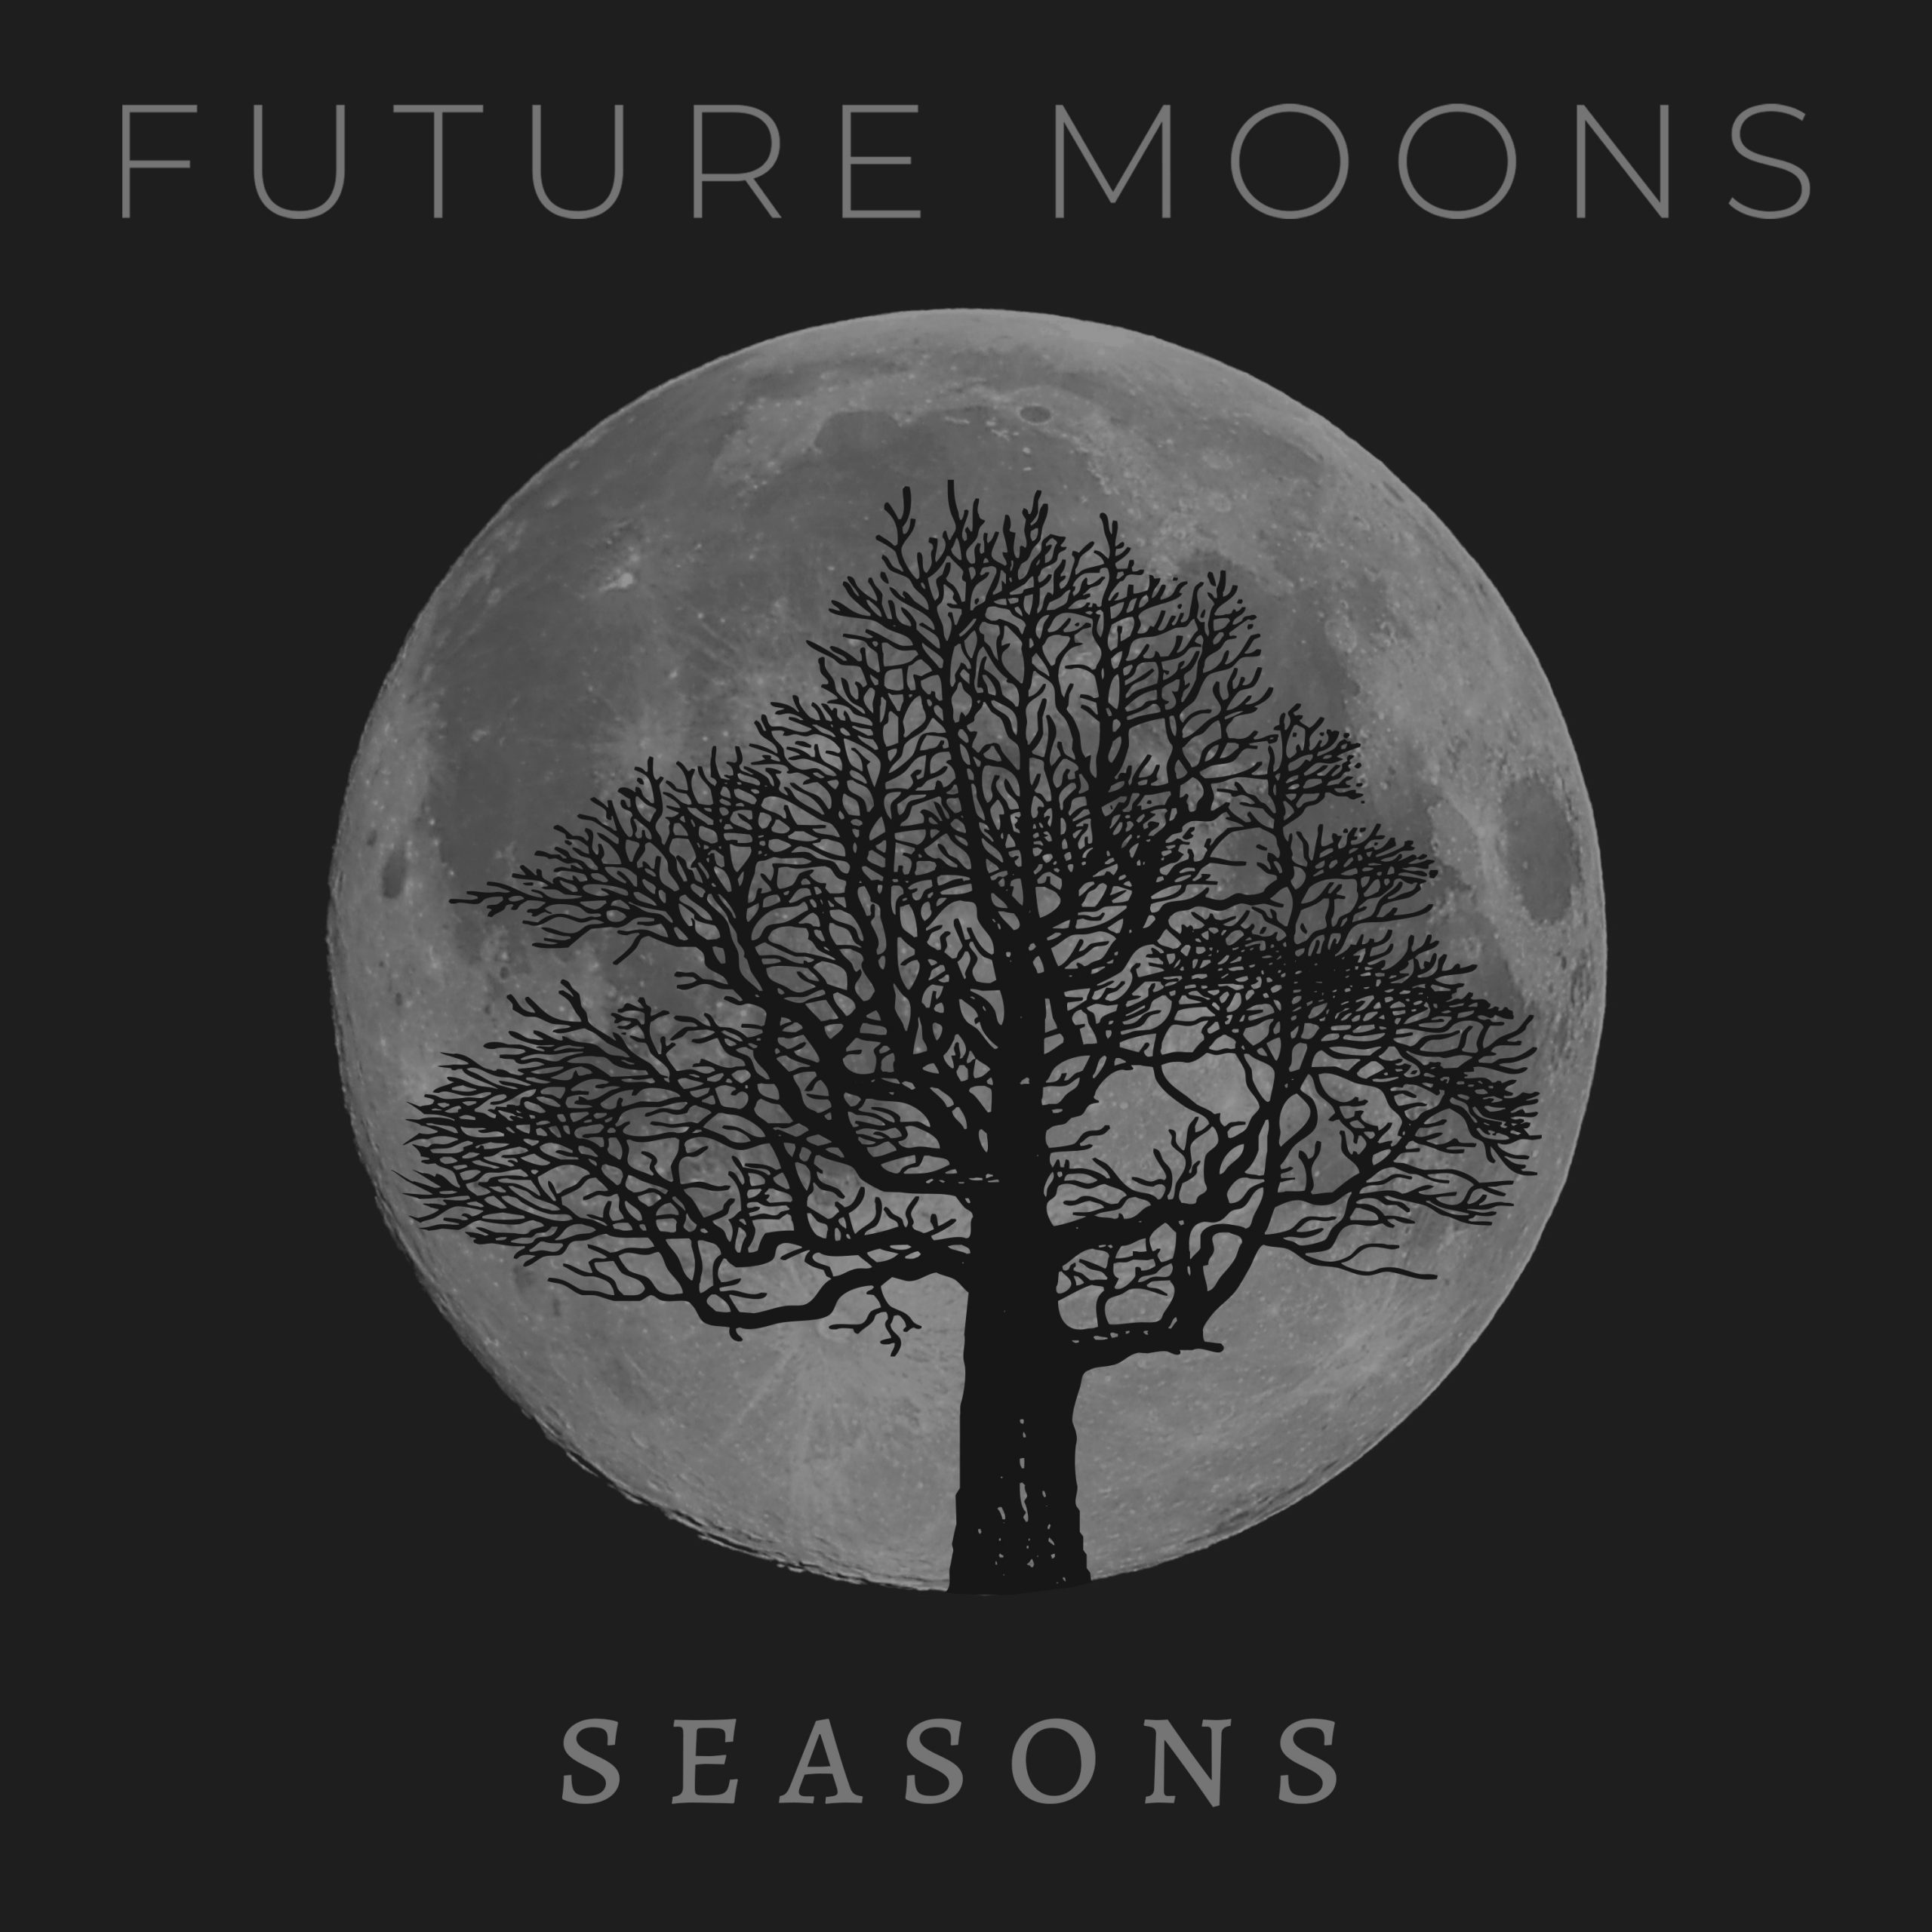 Explore The Seasons With Future Moons Debut EP - Set For Release on May 22nd